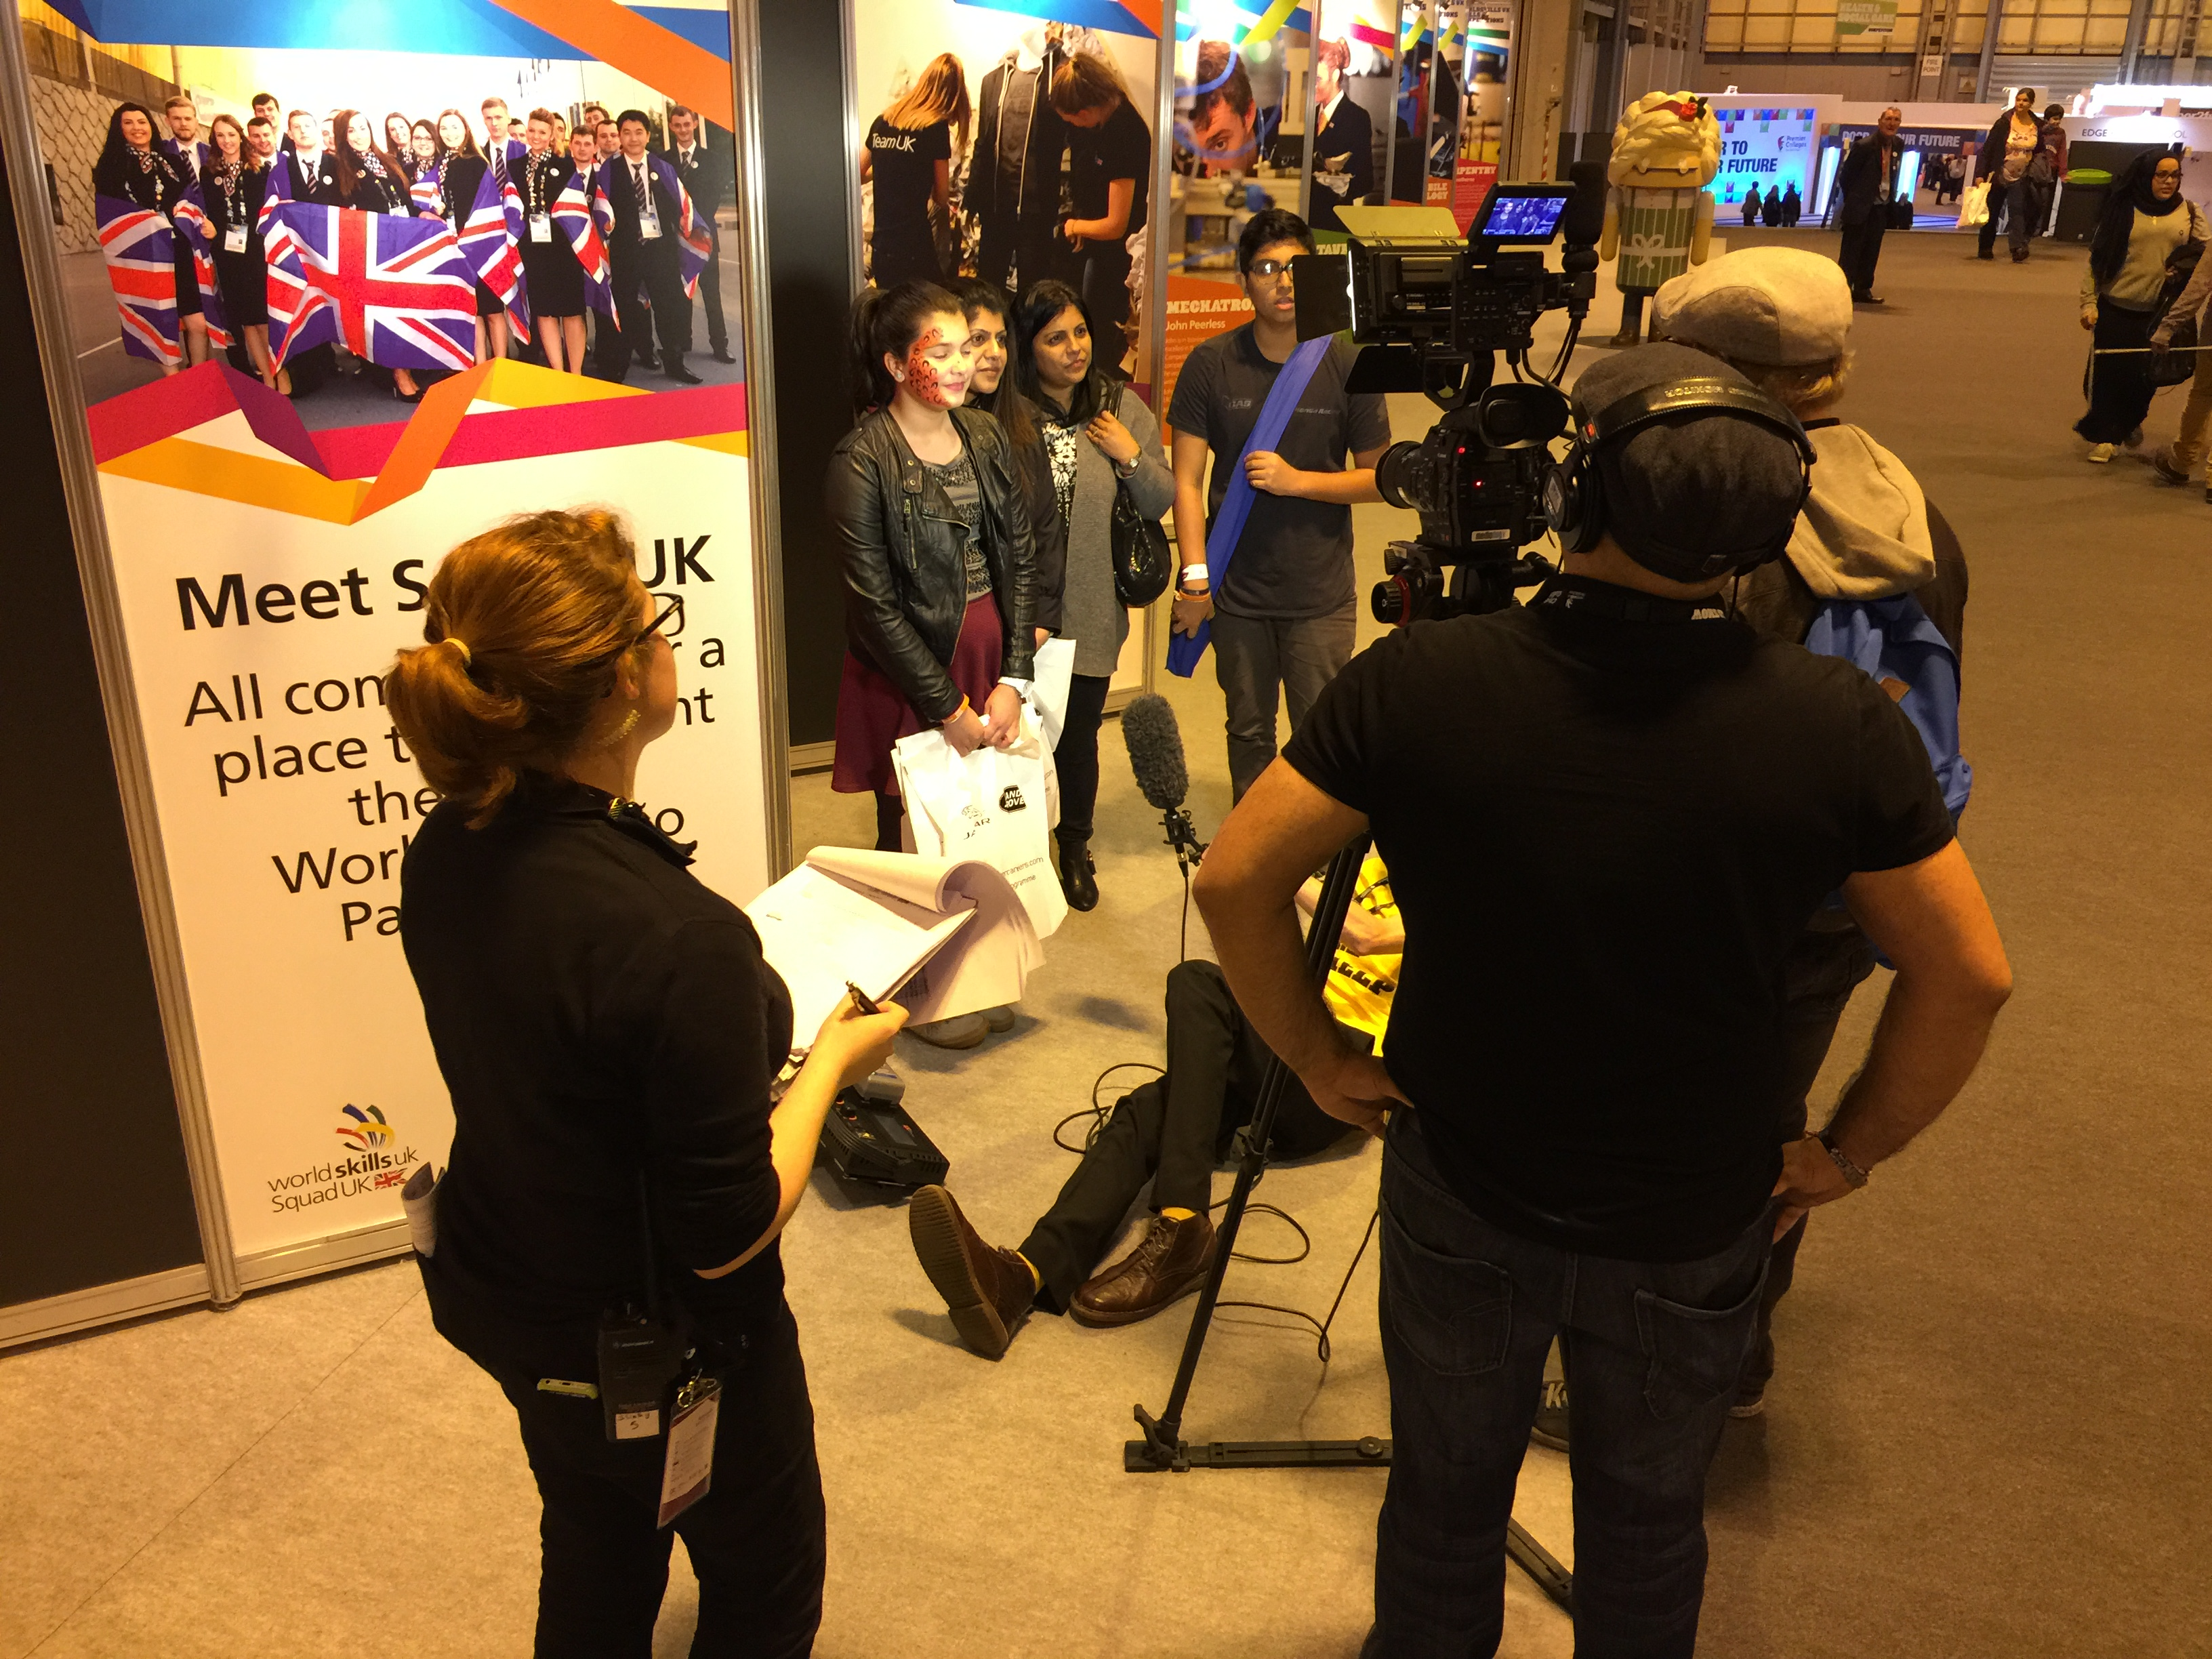 Photo from The Skills Show (Filming an interview)